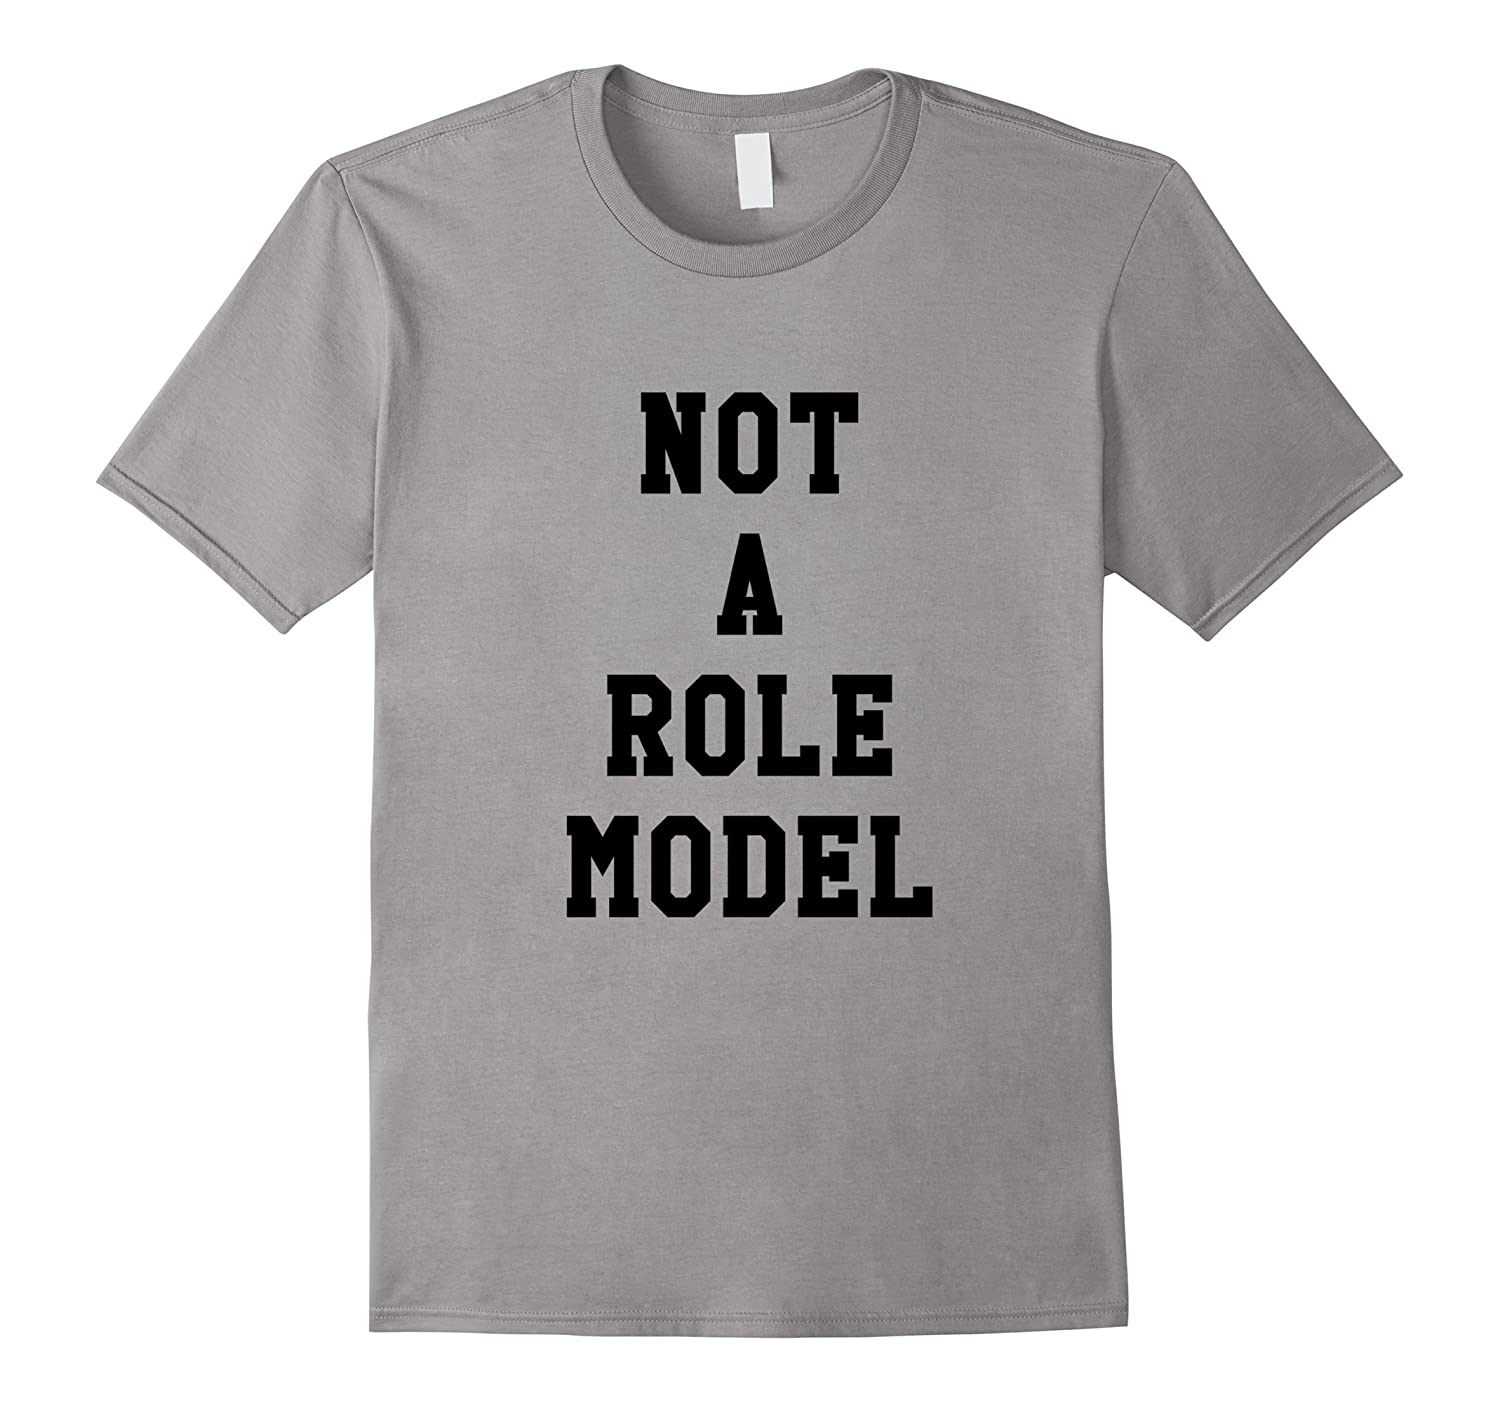 Not A Role Model Tee Shirt-TD